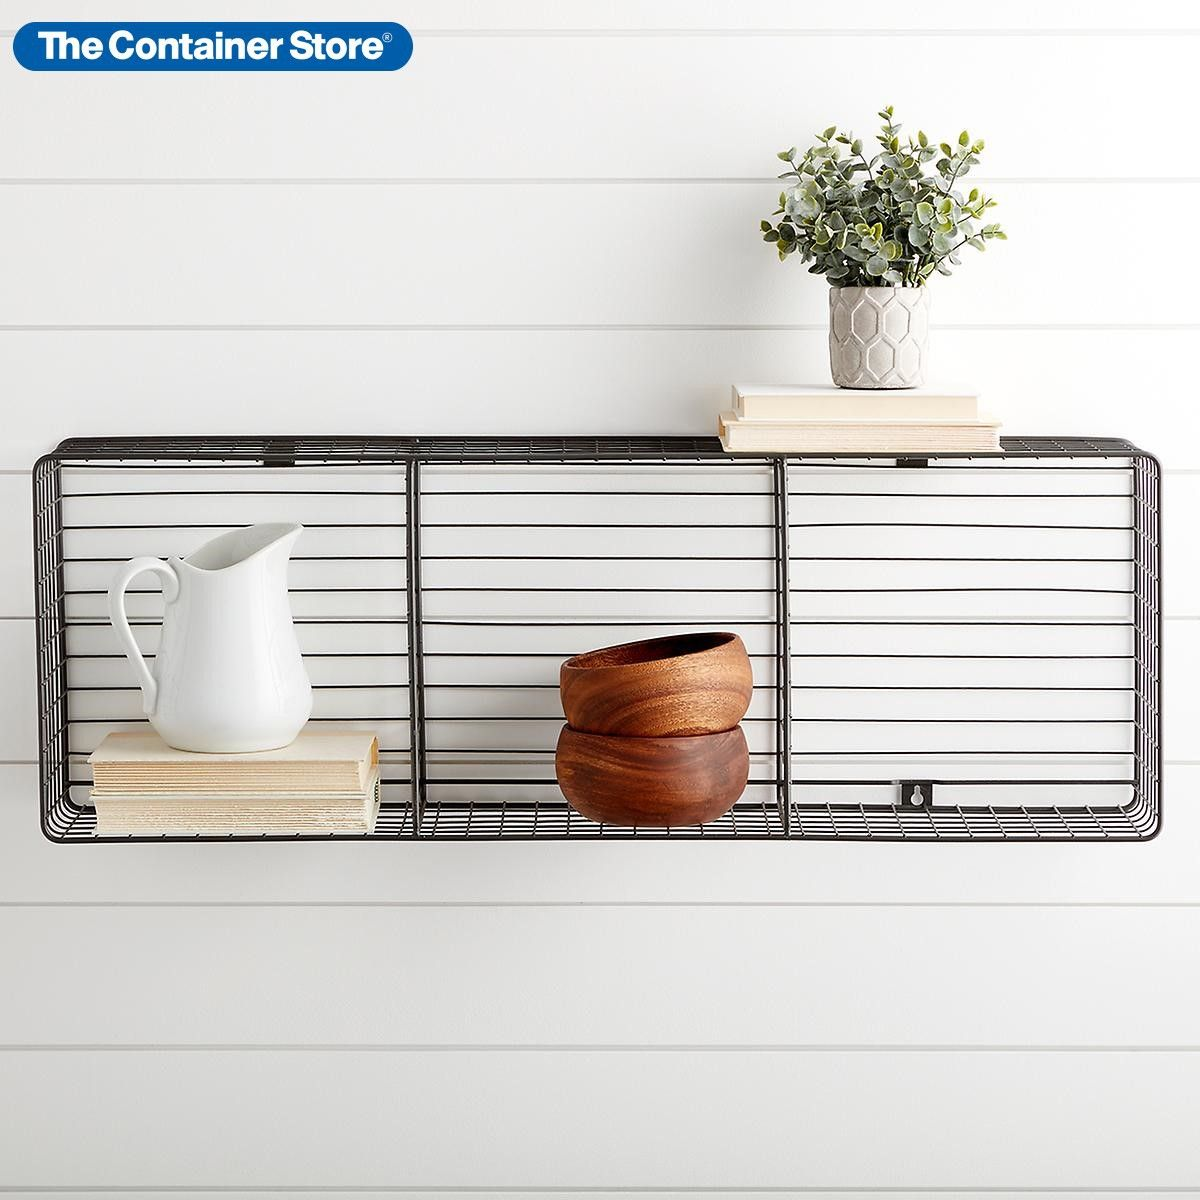 Wall Mounted Triple Cube In 2020 Cube Storage Container Store Wall Cubes